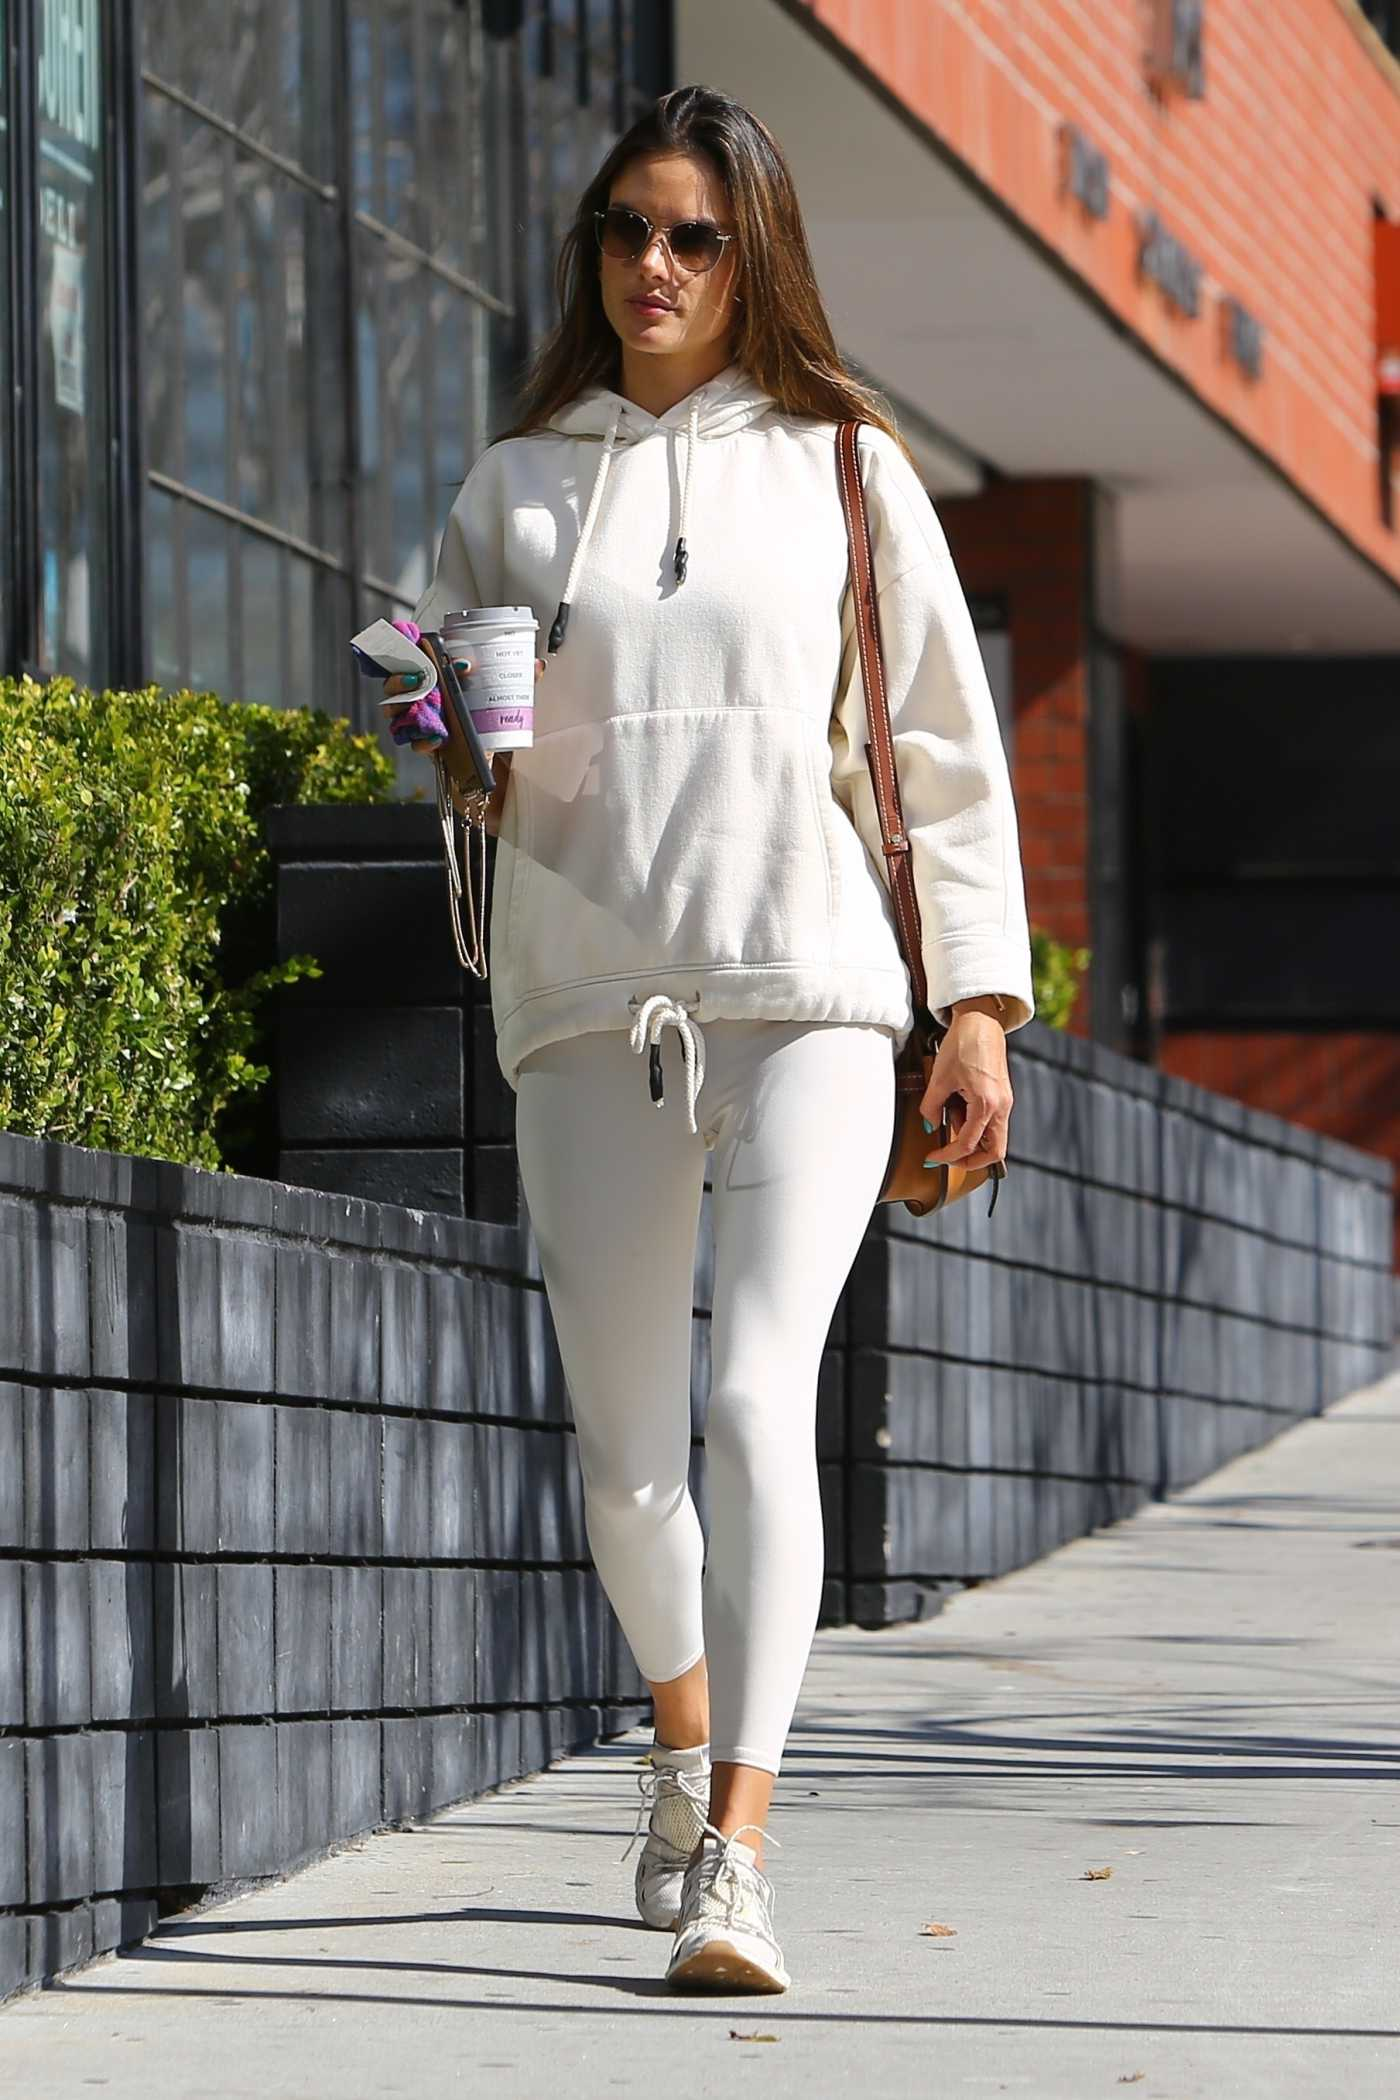 Alessandra Ambrosio in a White Leggings Arrives at a Pilates Studio in Los Angeles 02/20/2020